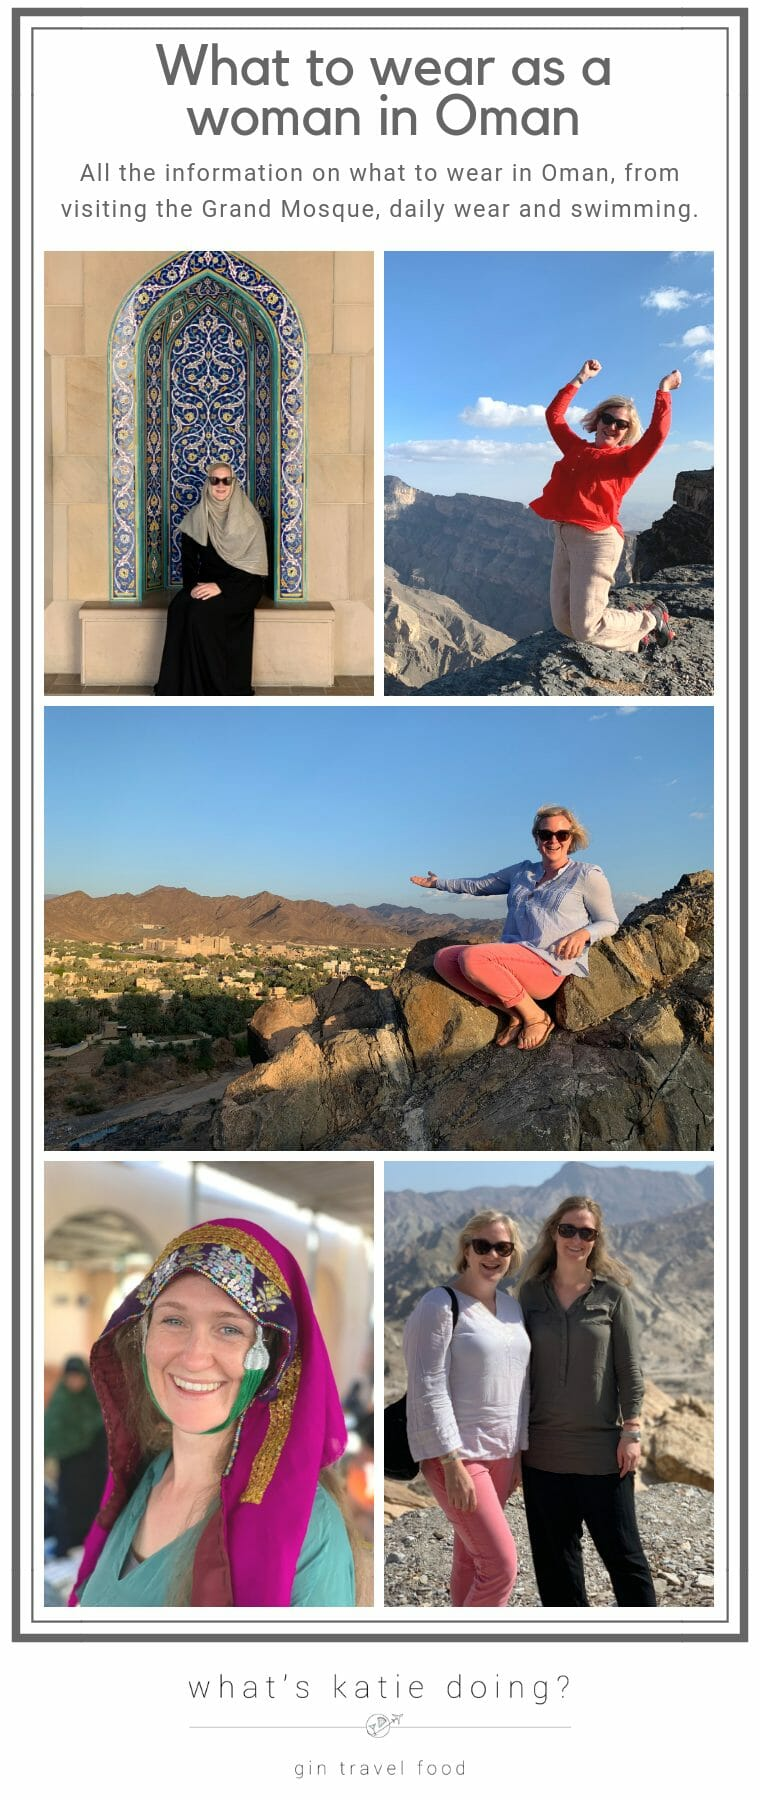 What to wear as a woman in Oman. From daily wear, to visiting the Grand Mosque, etiquette when swimming and traditional clothes